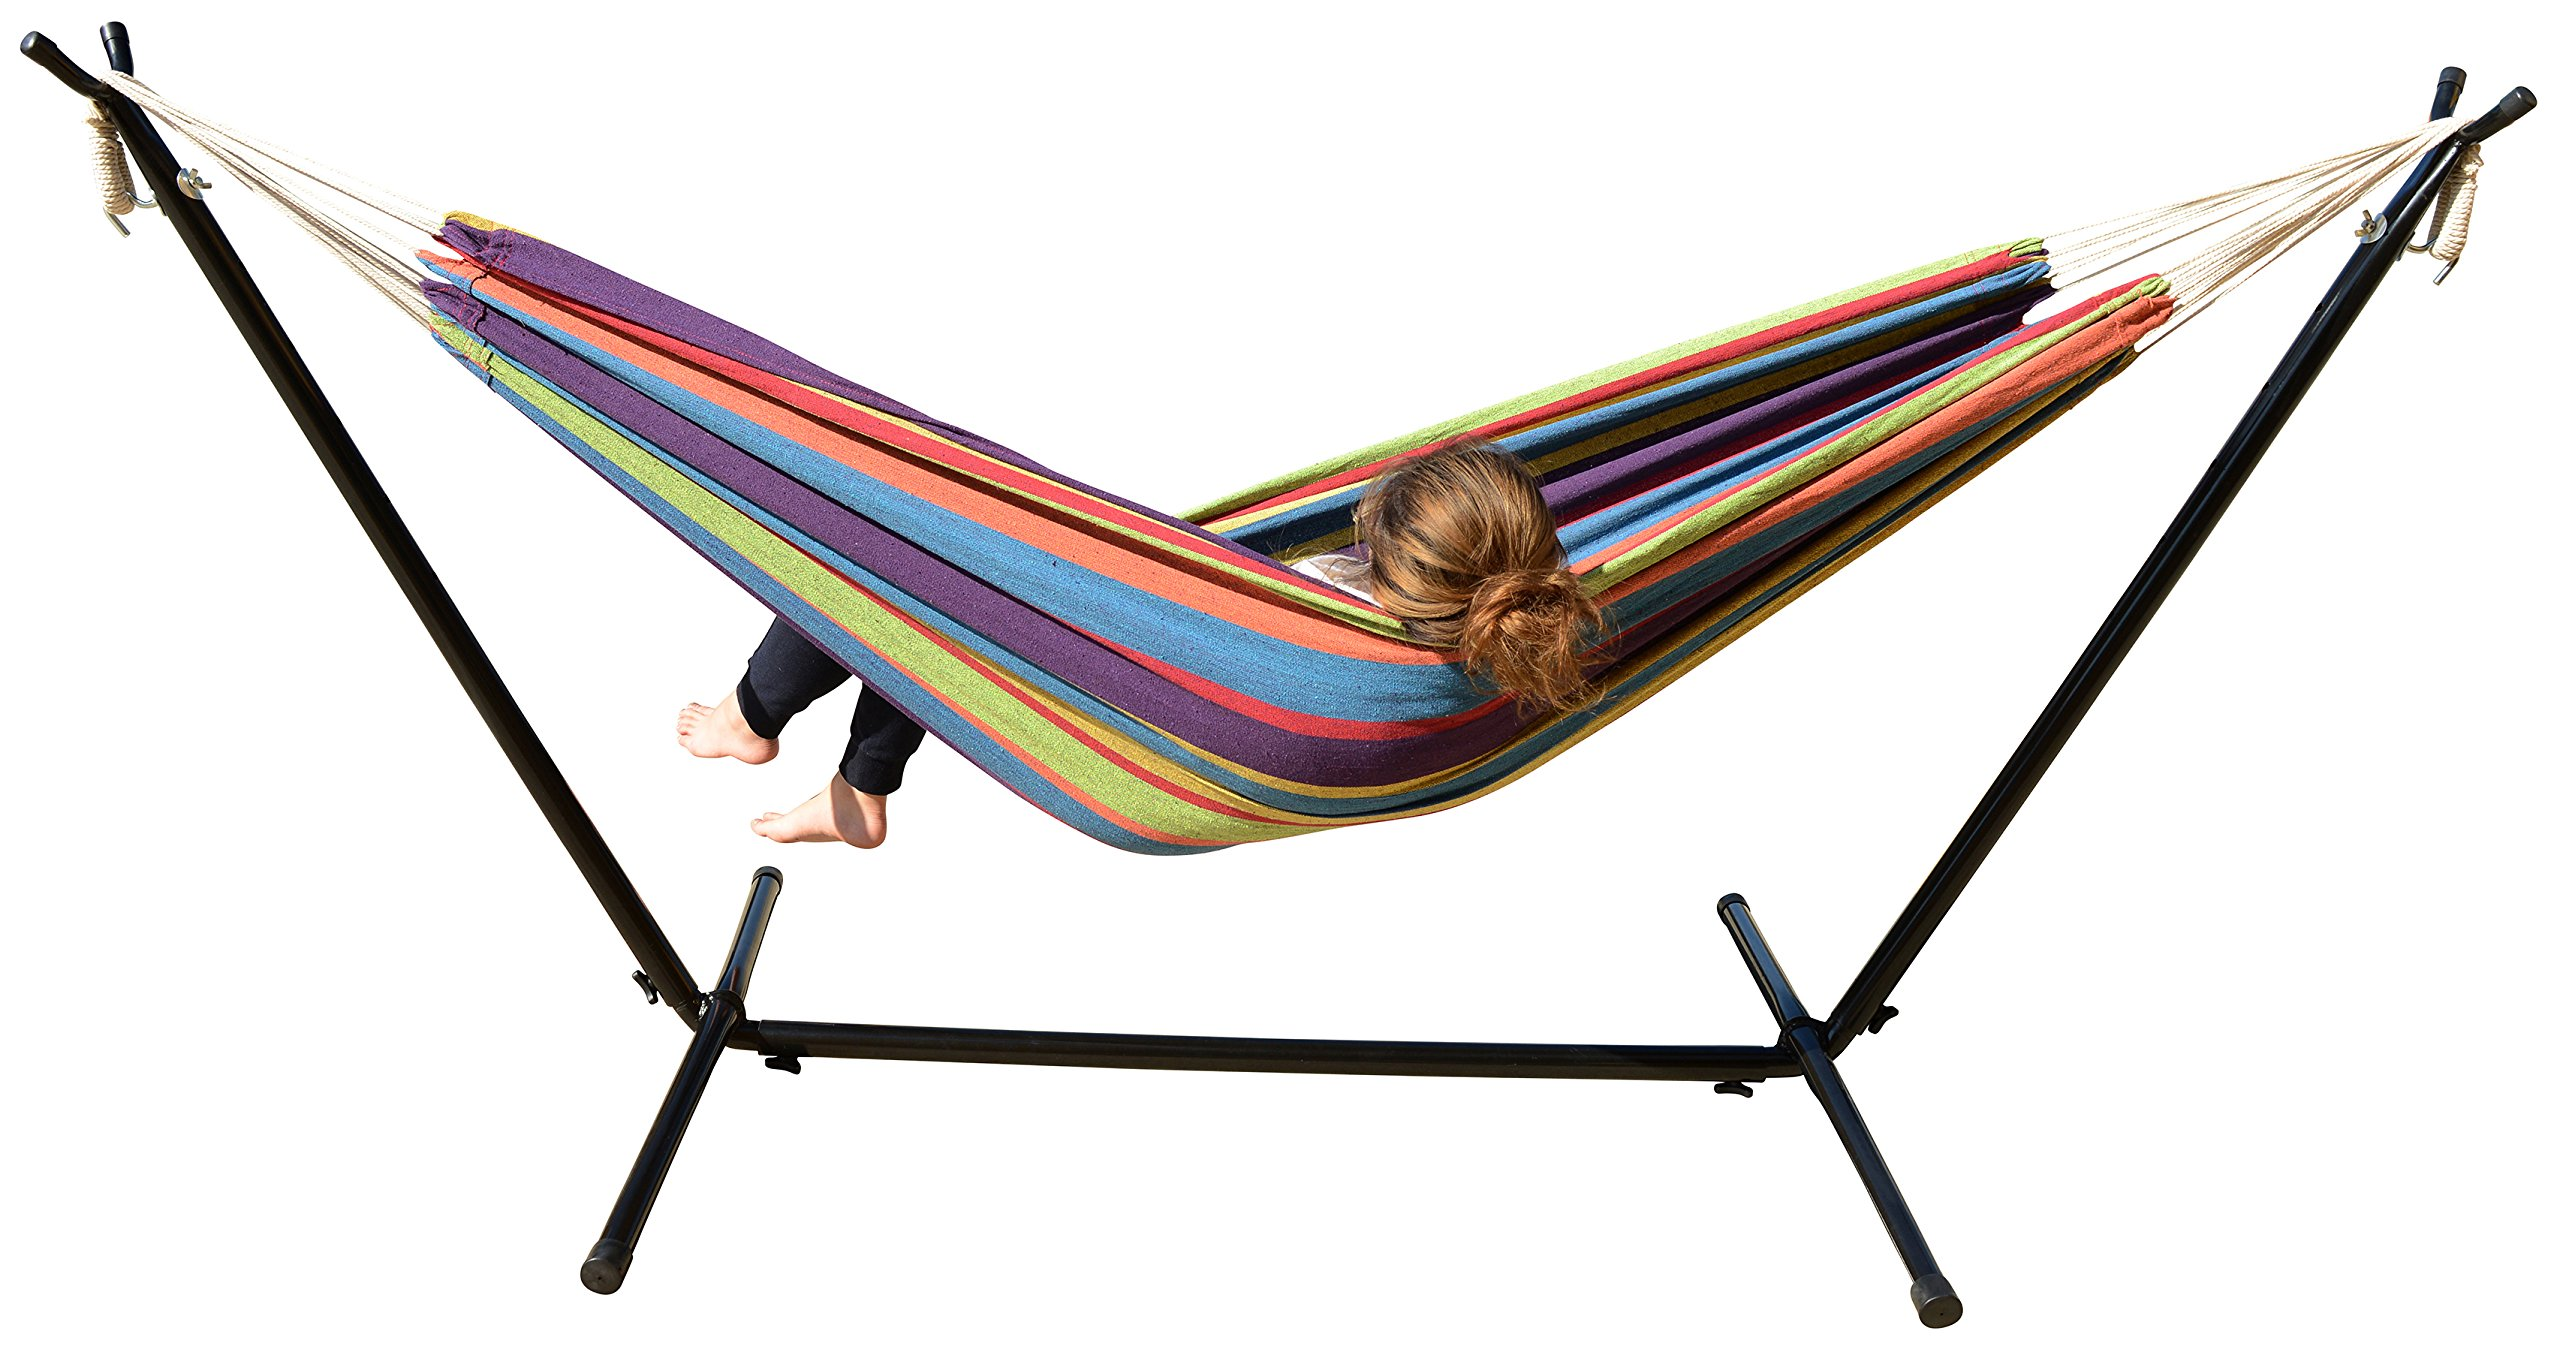 Mano Patio Hammock with Stand, Tropical Stripes in Red/Purple/Yellow